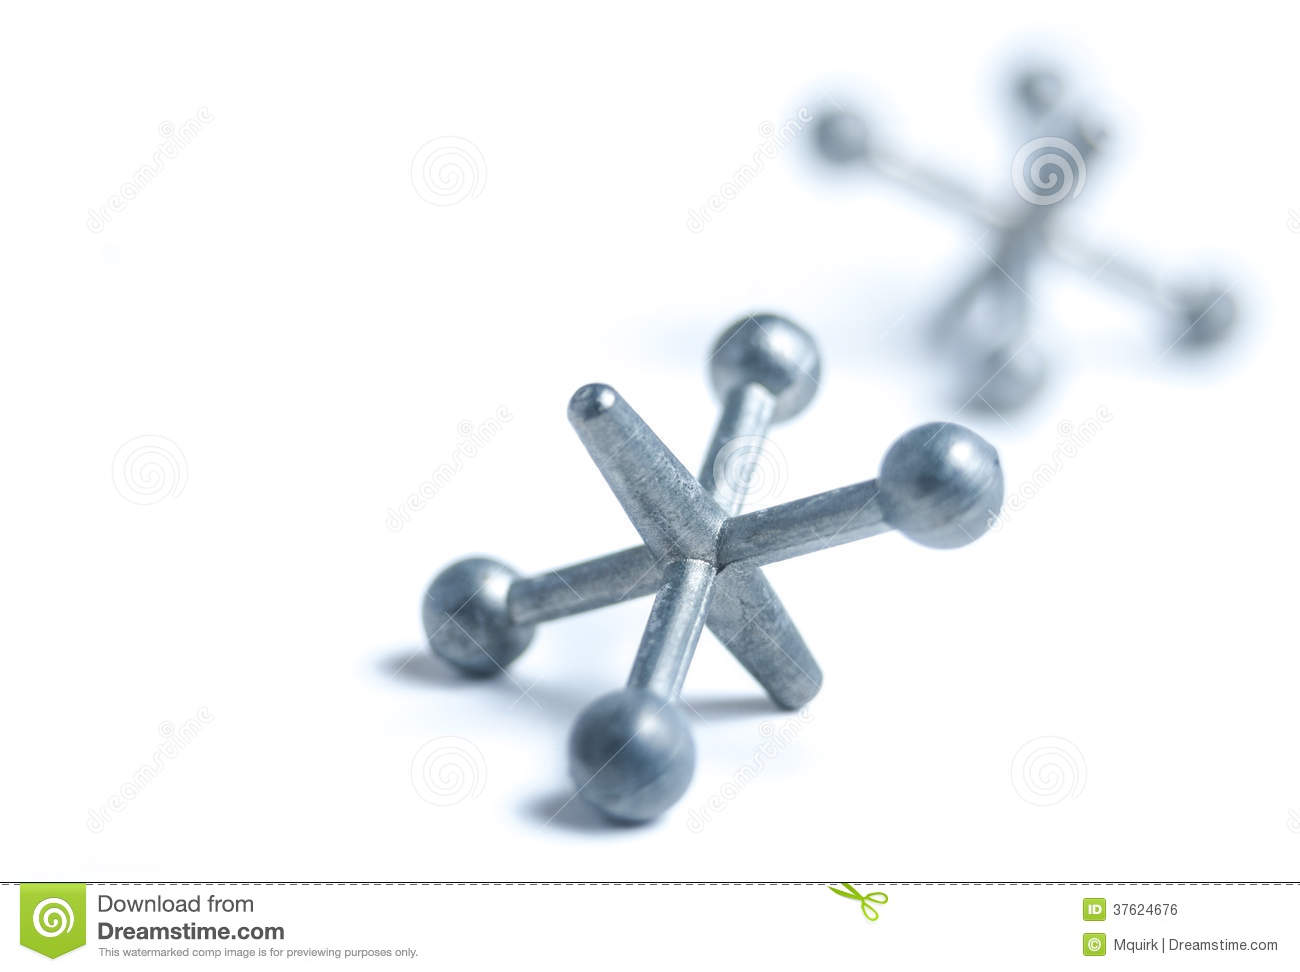 Jacks game pieces stock photo. Image of classic ...